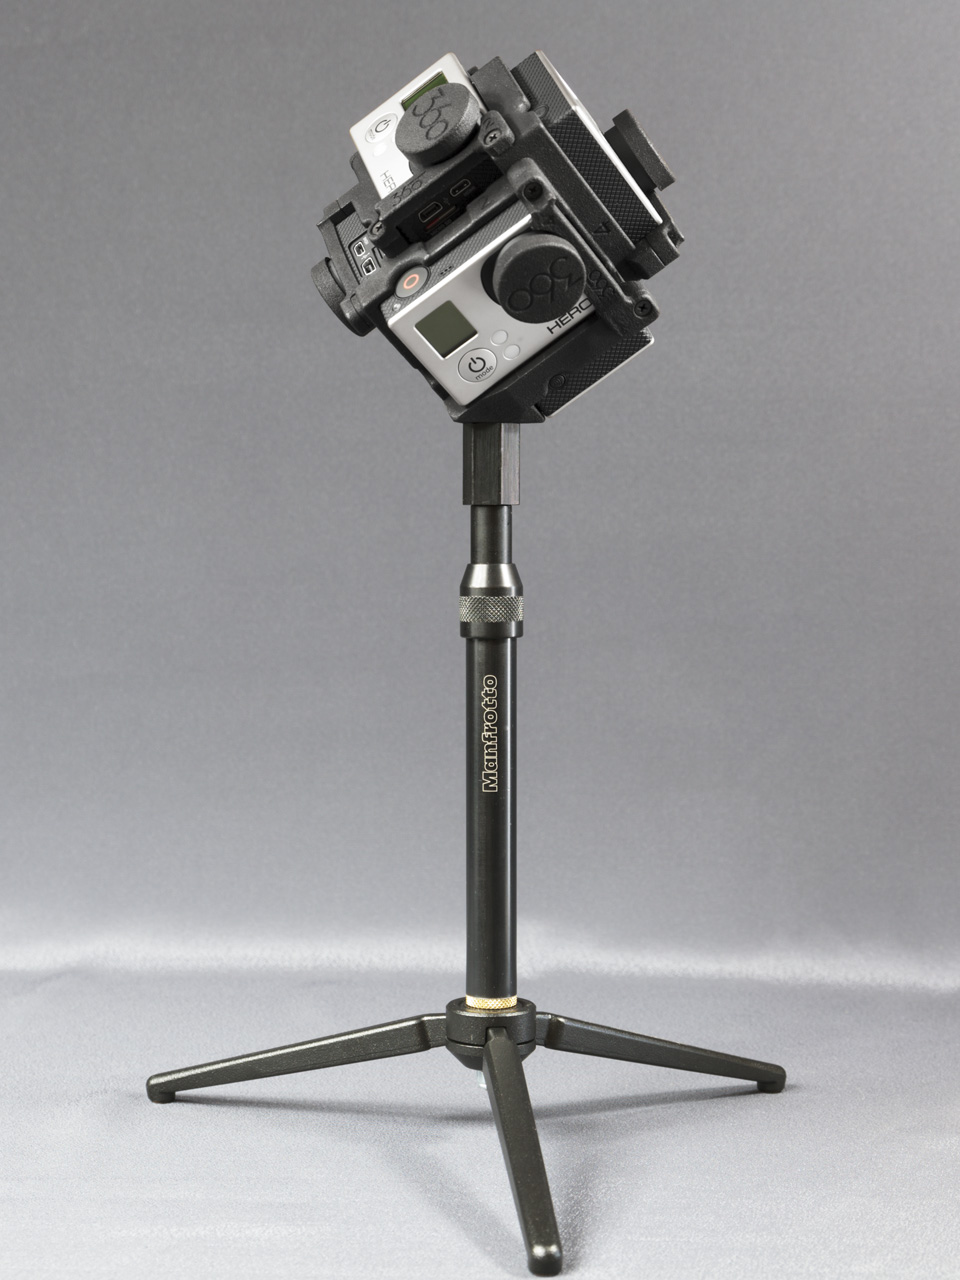 Manfrotto 209 mini tripod plus extension (with Freedom360)